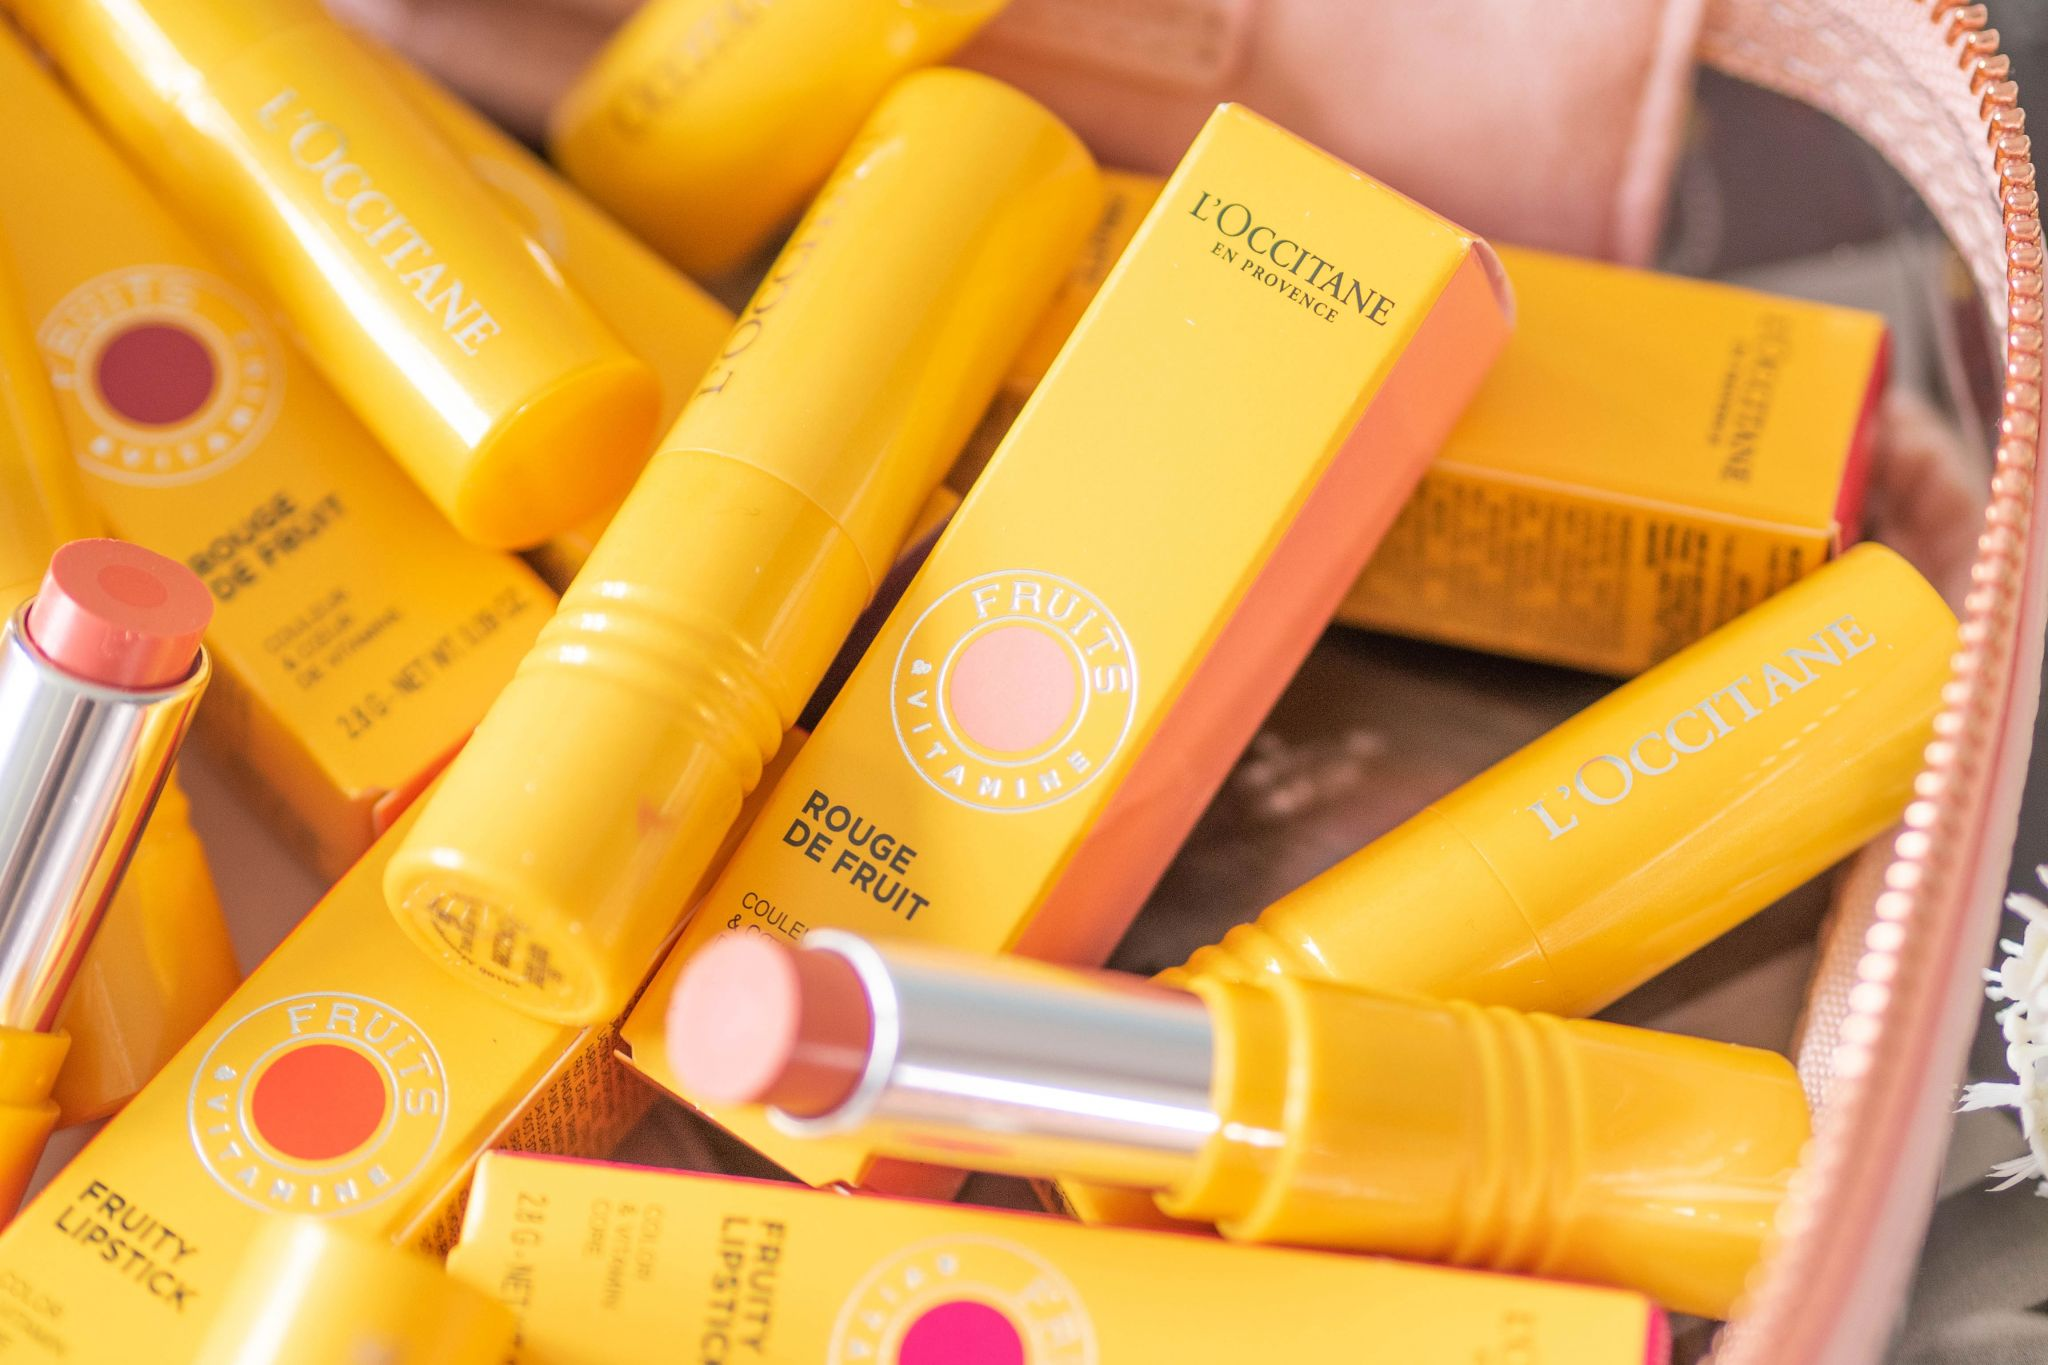 L'Occitane Fruity Lipstick Review with Swatches